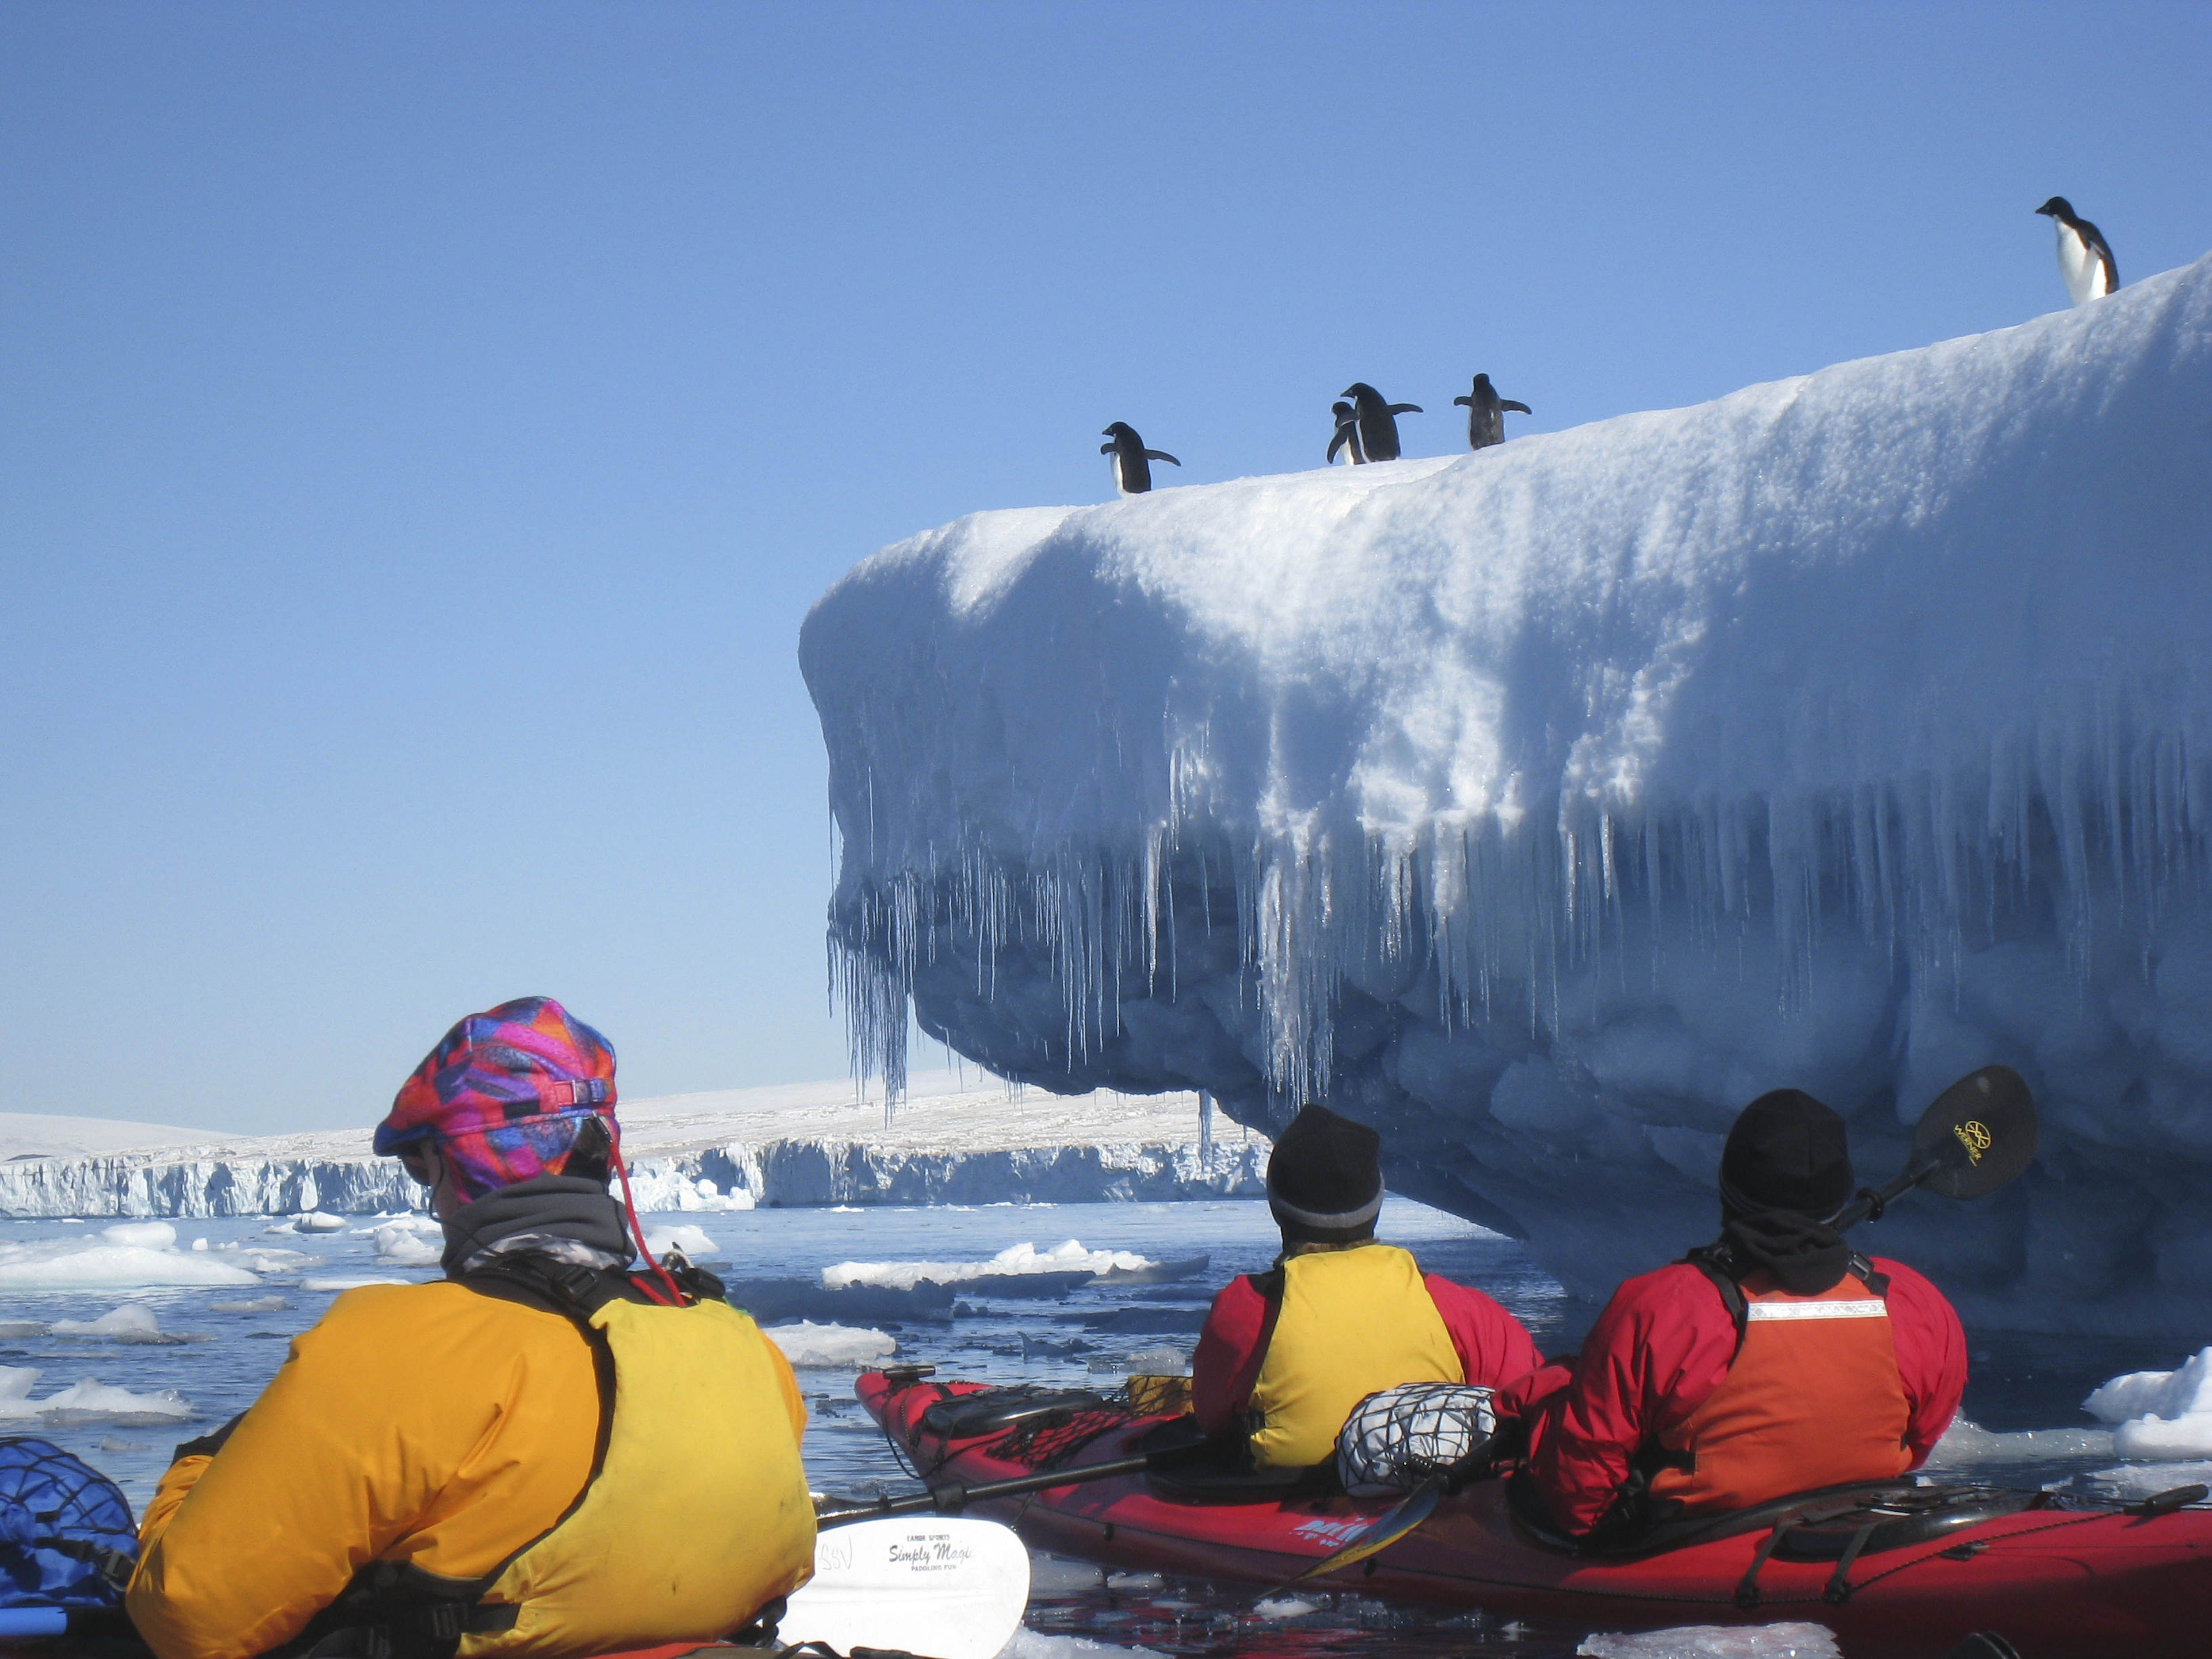 #Camping on ice, paddling through ice-ladden channels or exploring the underwater world - our fellow expeditioners certainly have a trip of a lifetime in #Antarctica! http://bit.ly/1DZbtSM #Auroraexpeditions #Travel #Bucketlist #Penguins #Iceberg